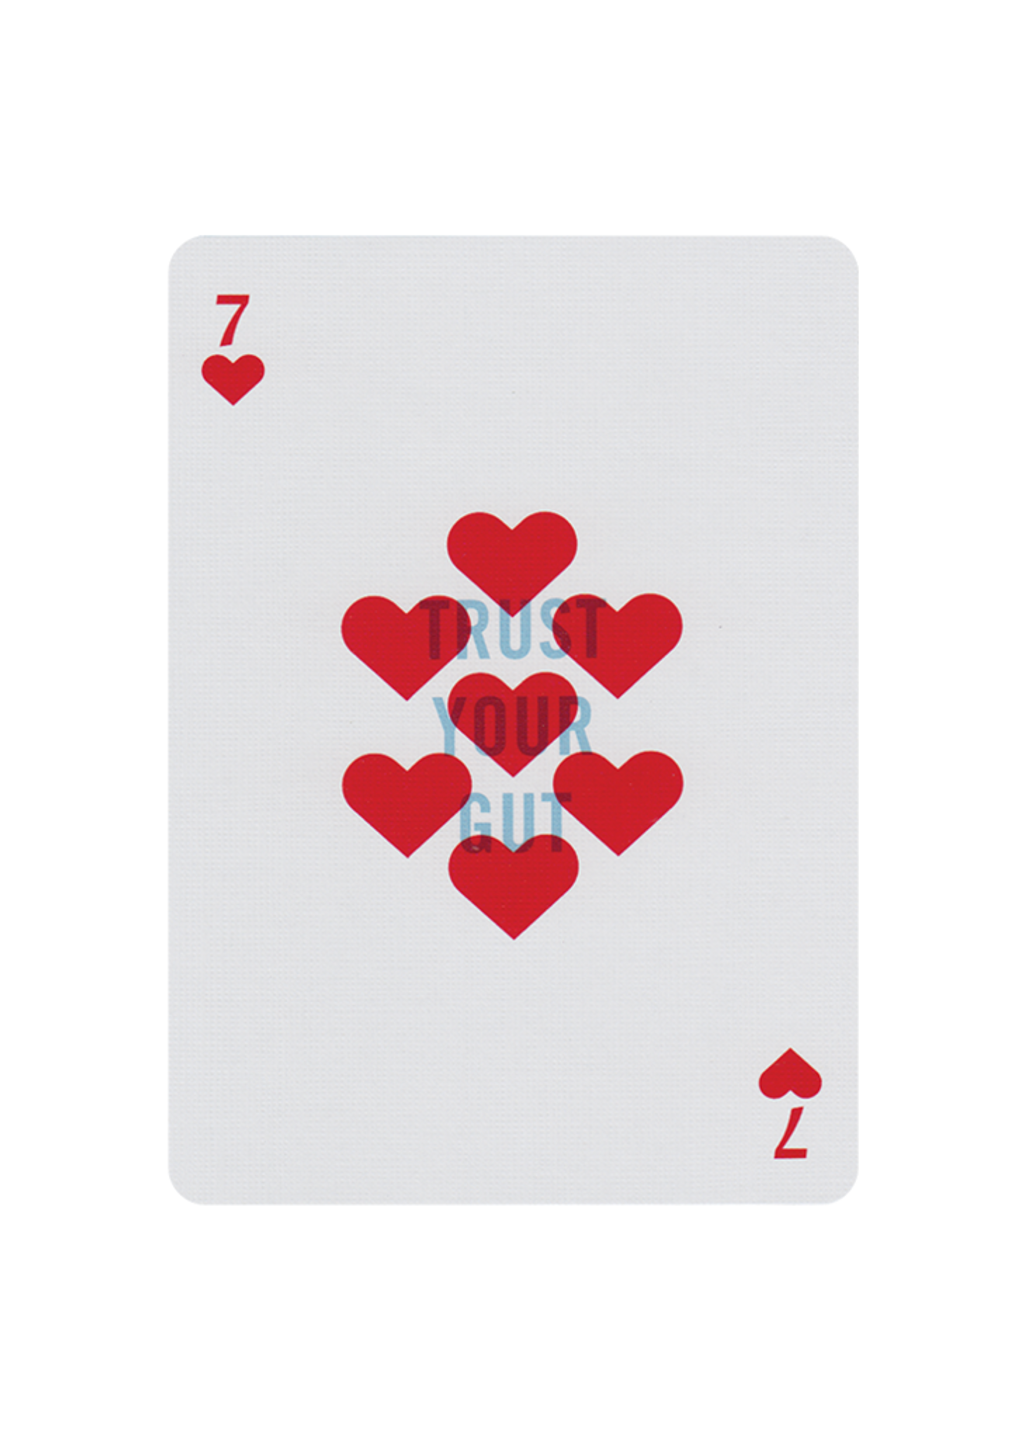 spark-playing-cards-seven-hearts_1024x1024.png